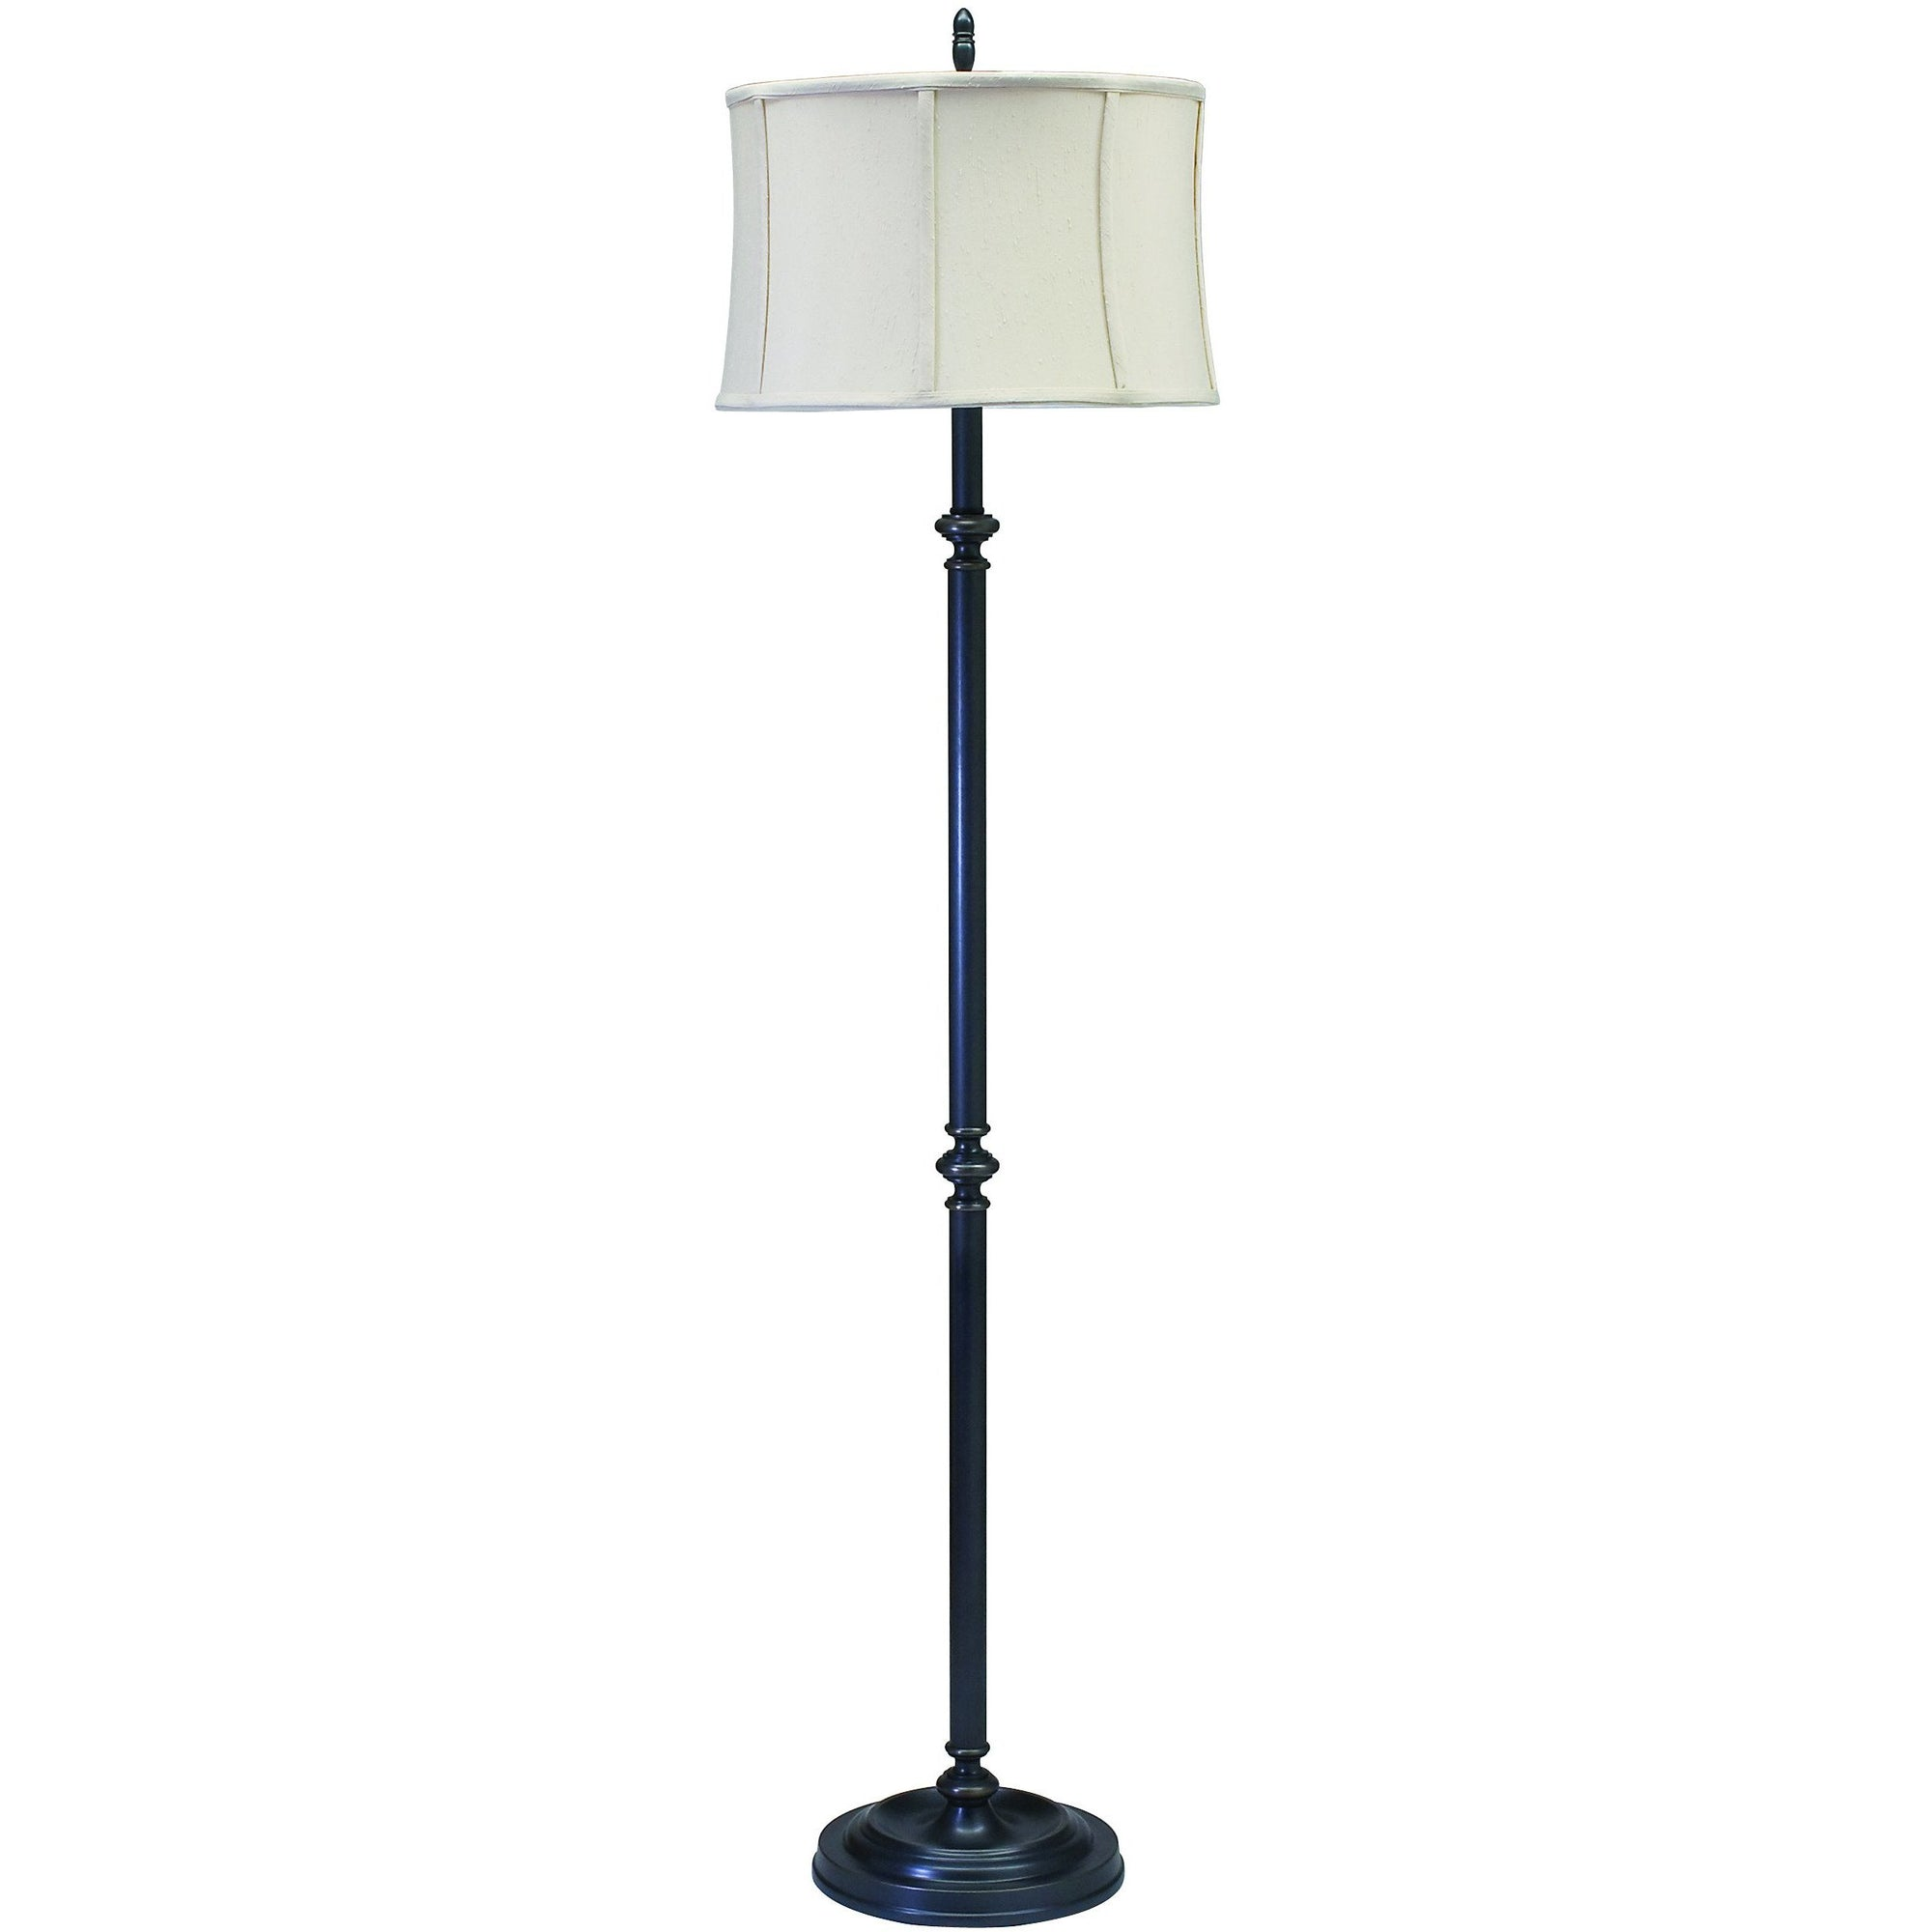 House Of Troy Floor Lamps Coach Floor Lamp by House Of Troy CH800-OB